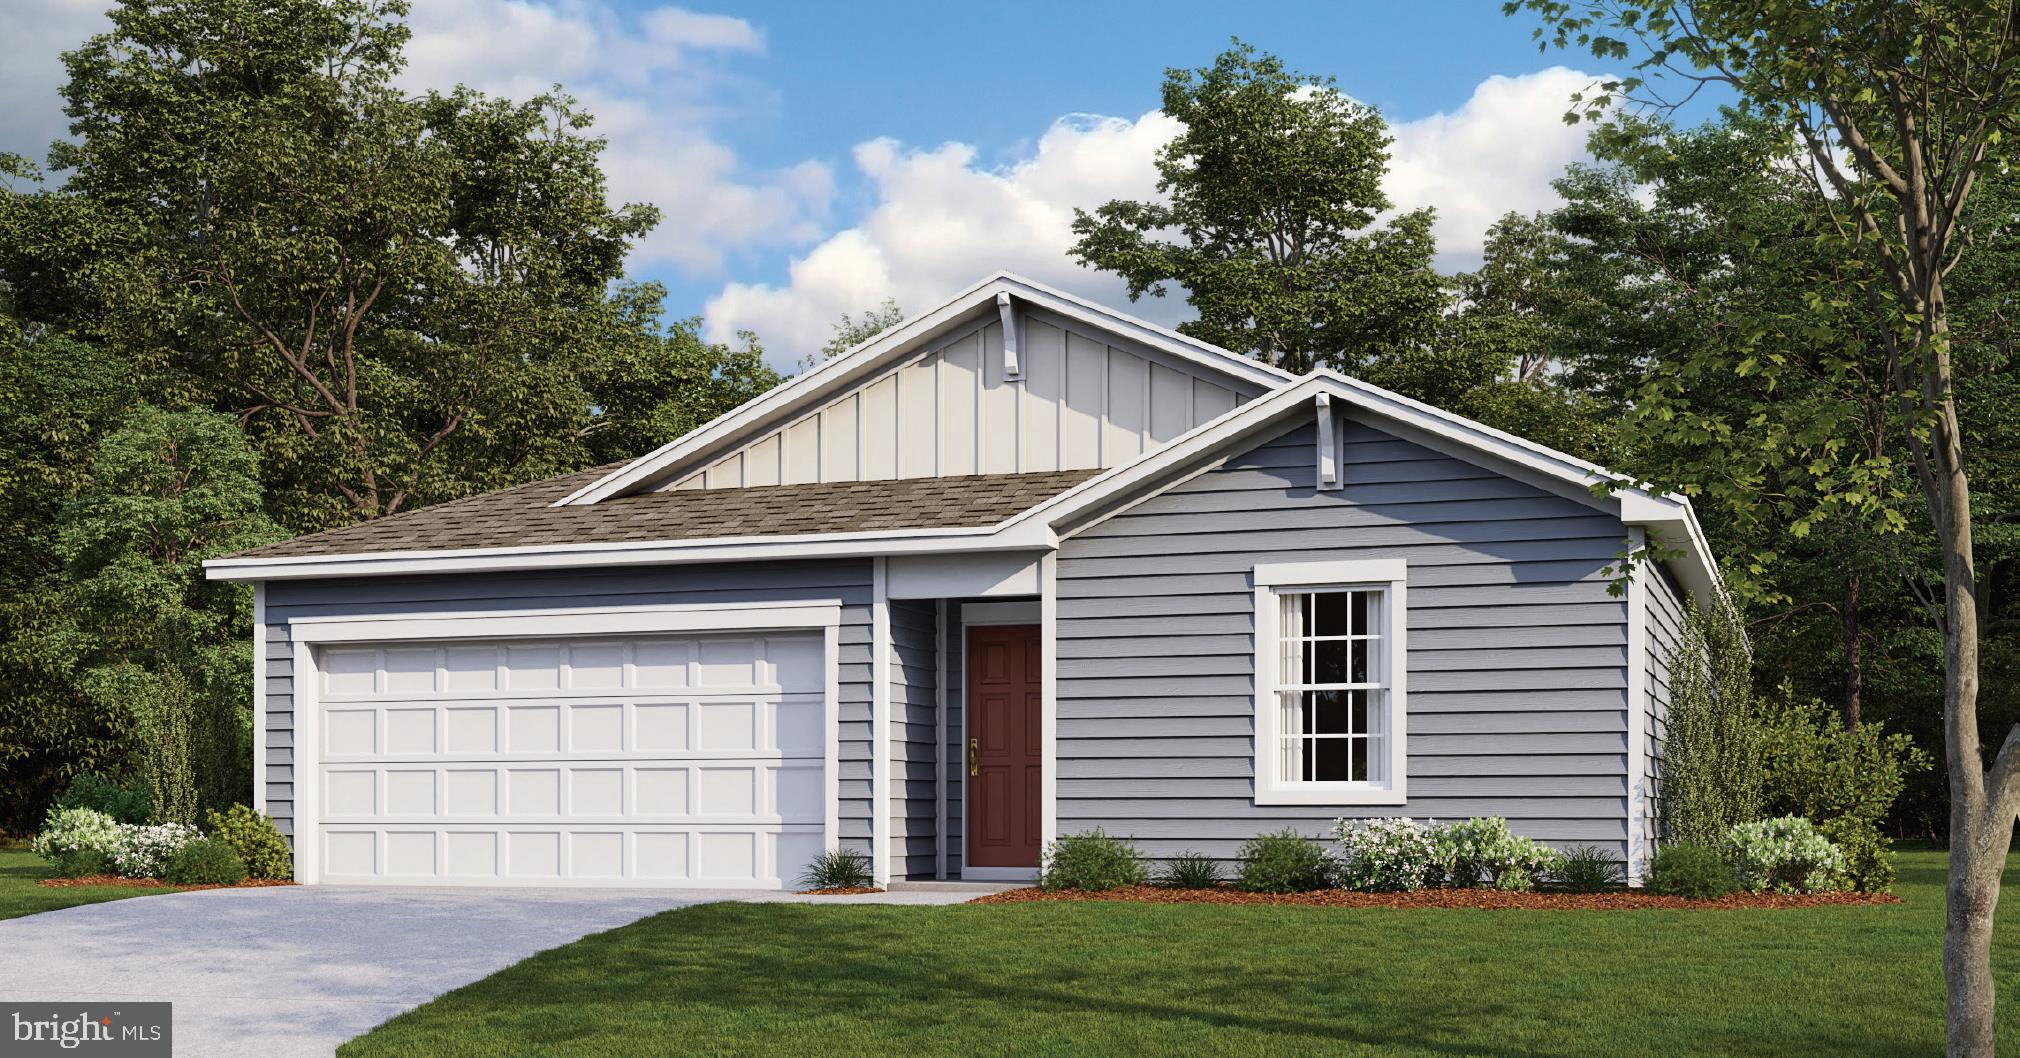 BRAND NEW, MOVE-IN-READY! The Freeport, features 4 bedrooms, 2 bath, and 2 car garage. The openbrigh